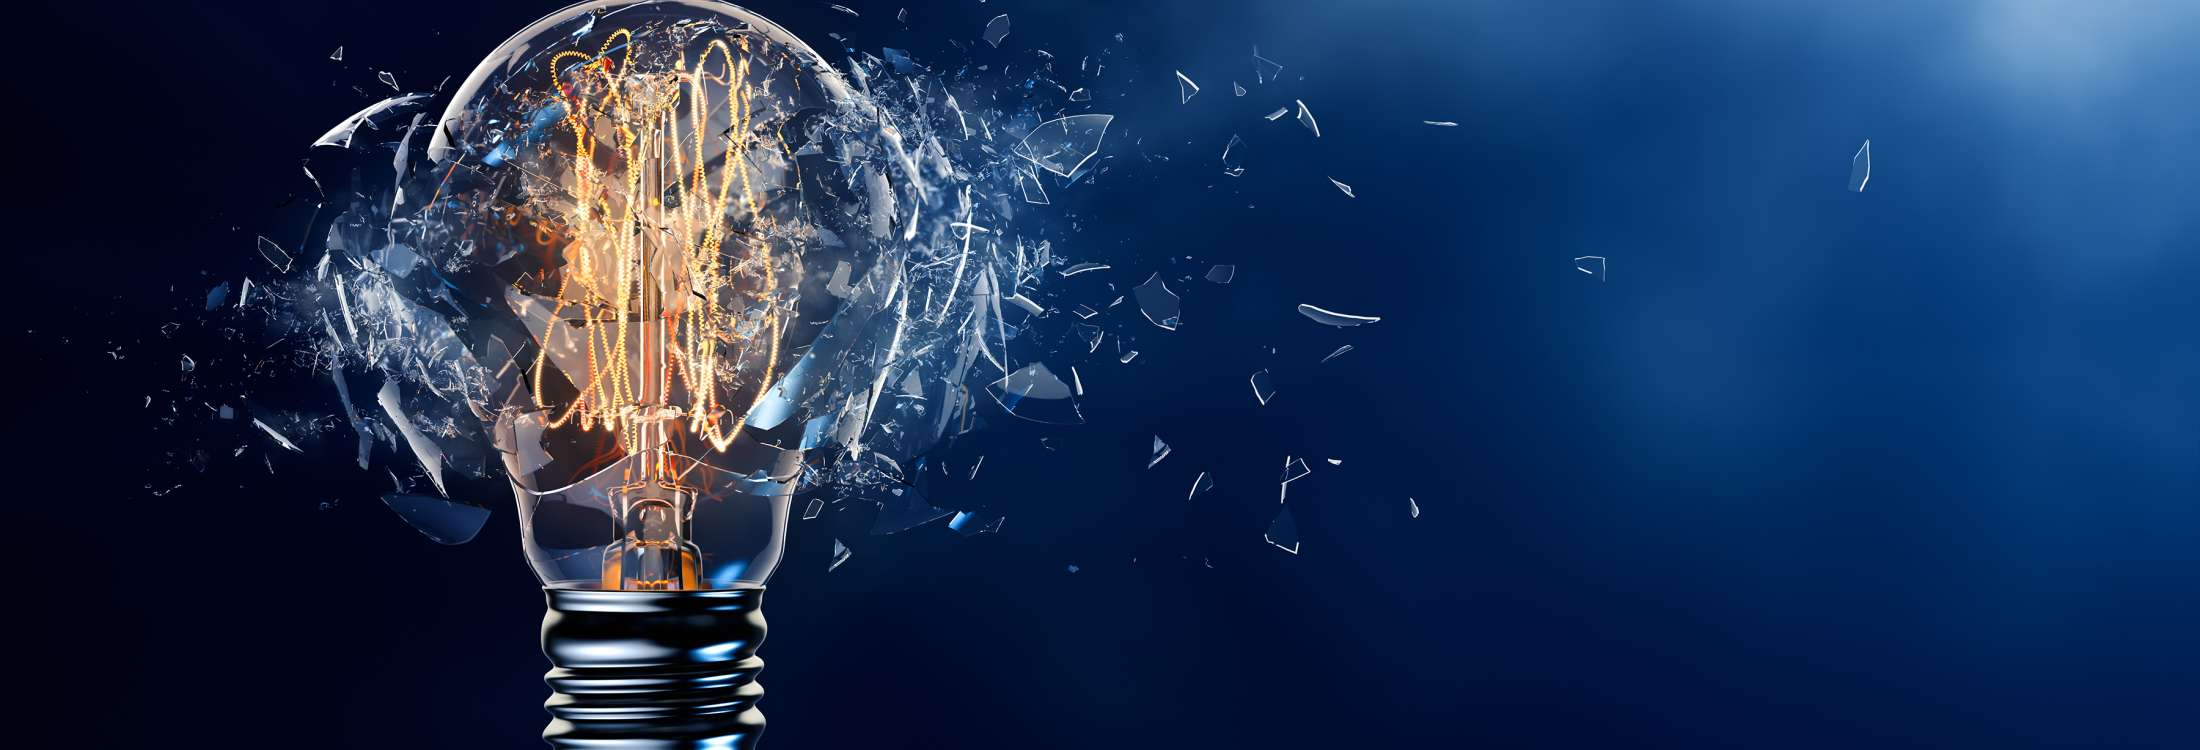 Exploding light bulb with shattered glass on empty blue background